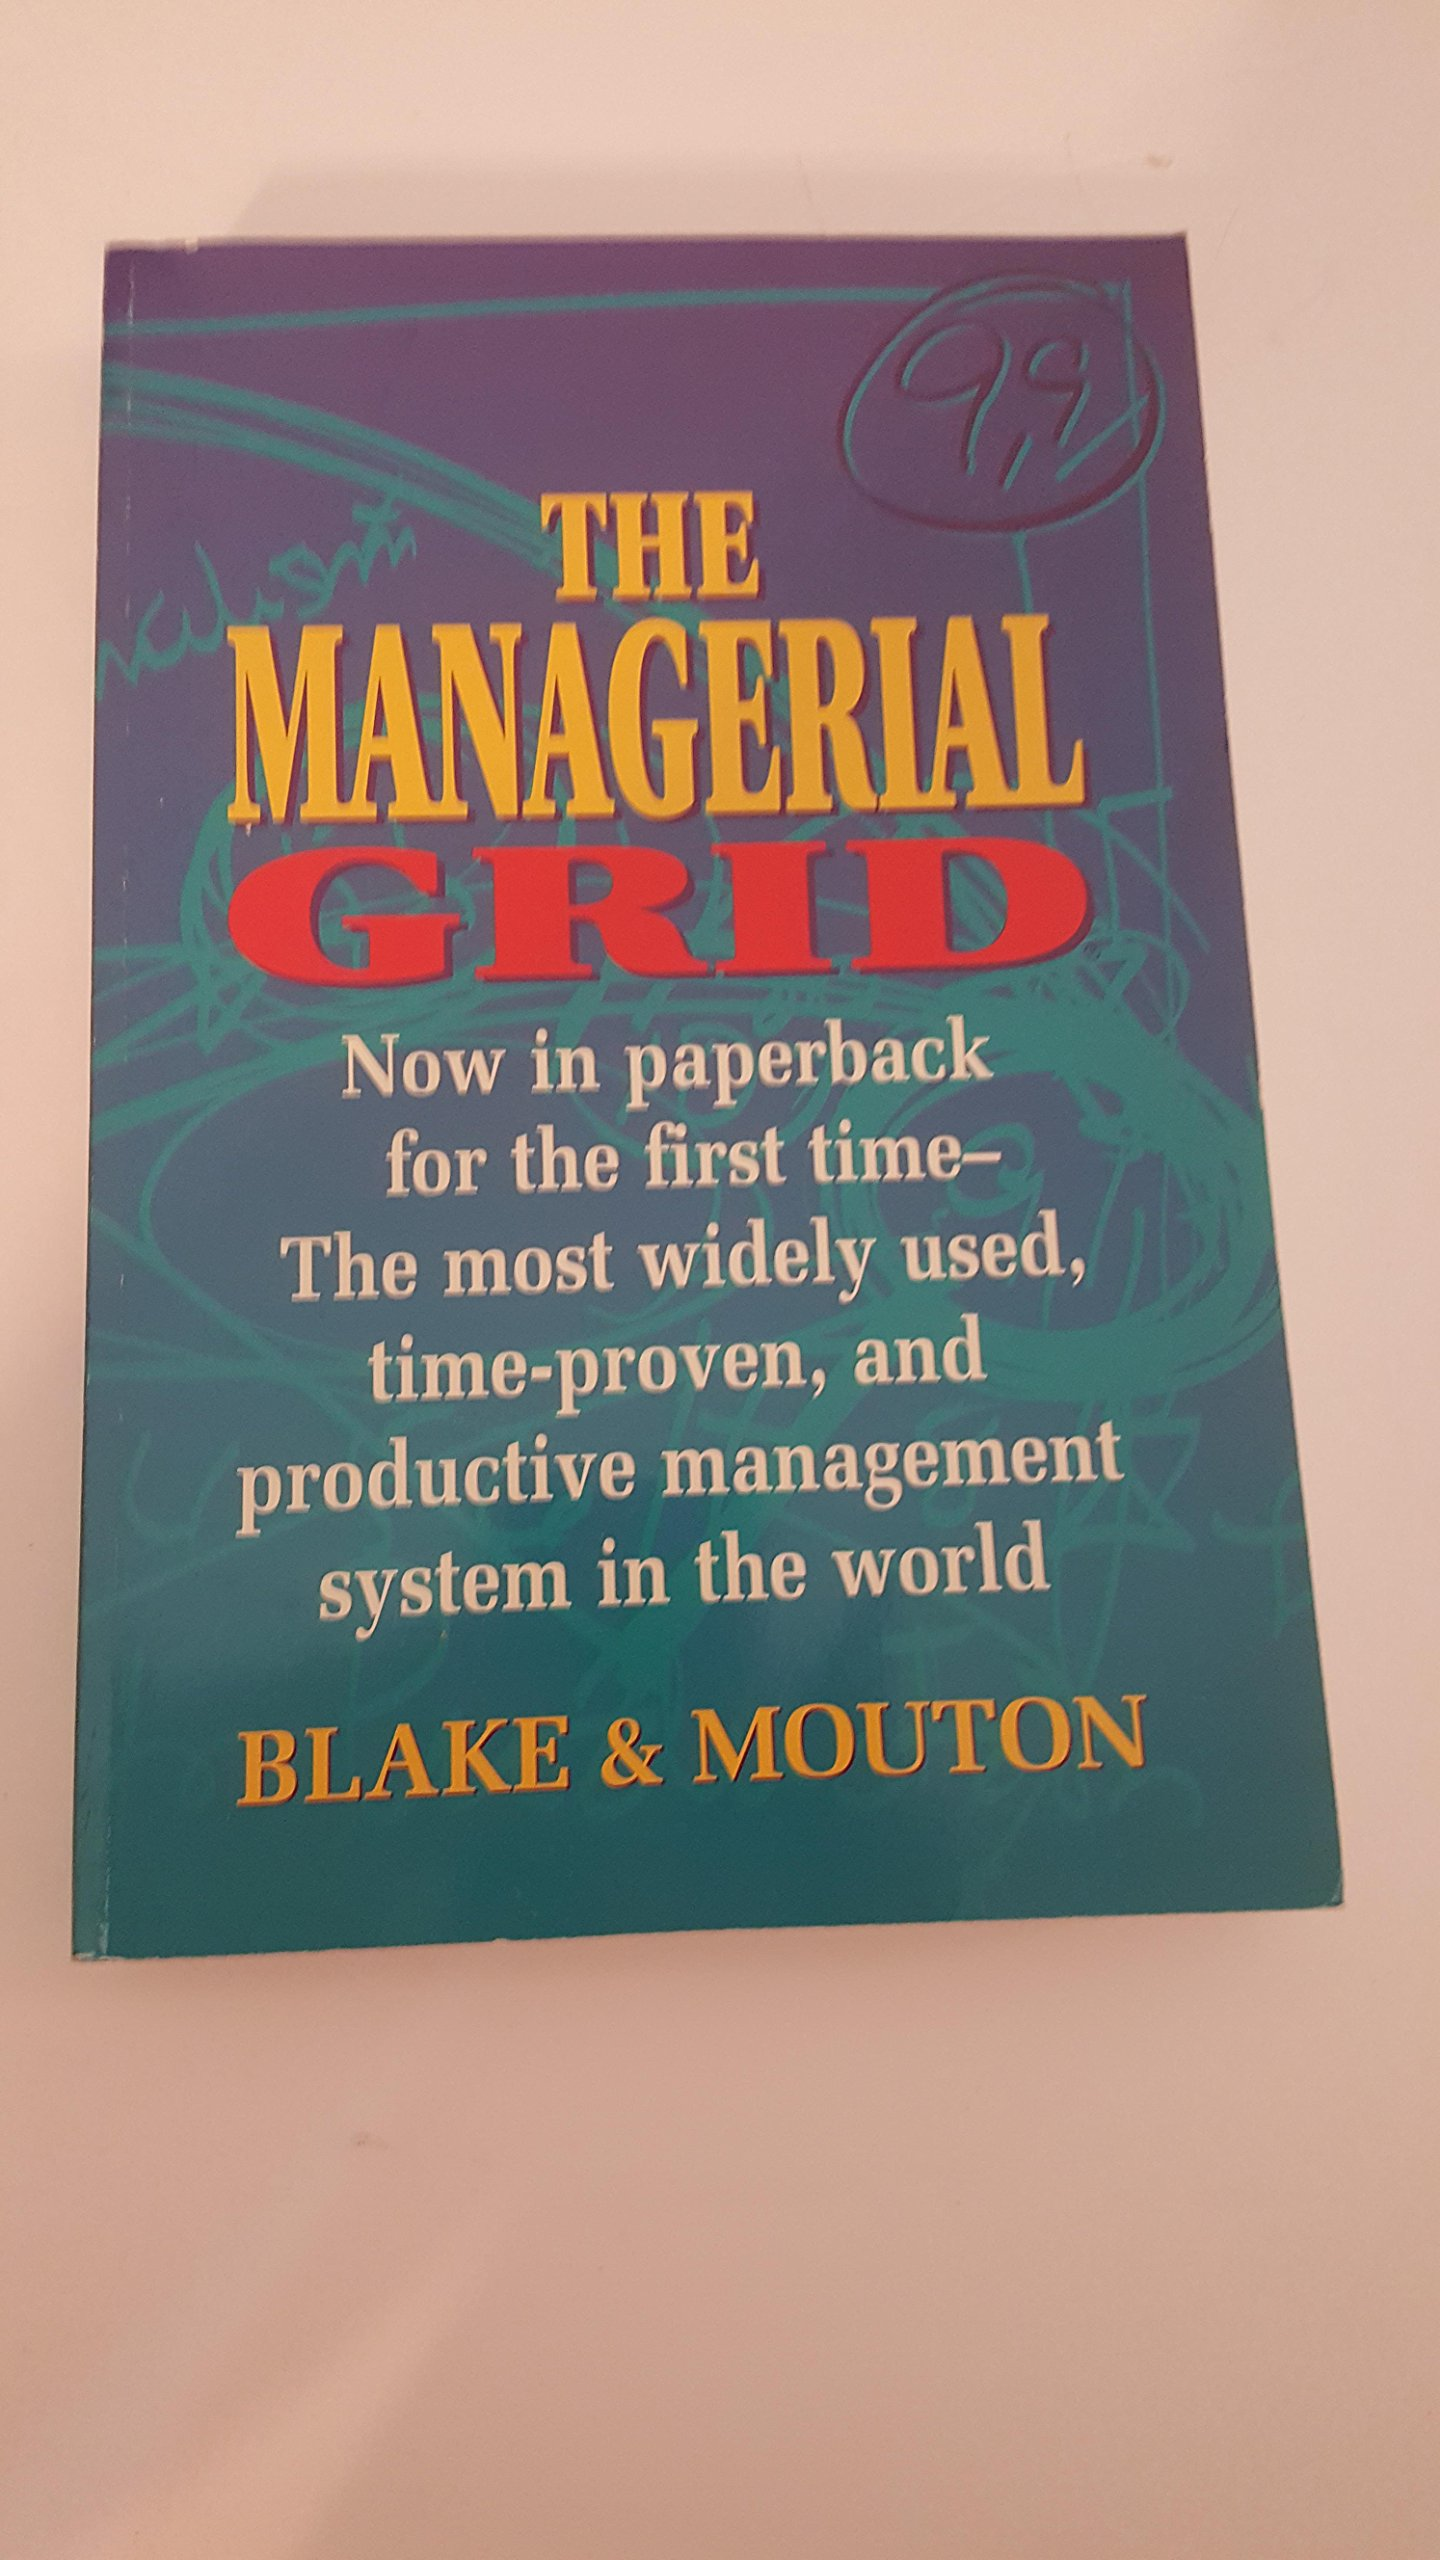 The managerial grid amazon robert r blake jane s mouton the managerial grid amazon robert r blake jane s mouton libros en idiomas extranjeros malvernweather Gallery